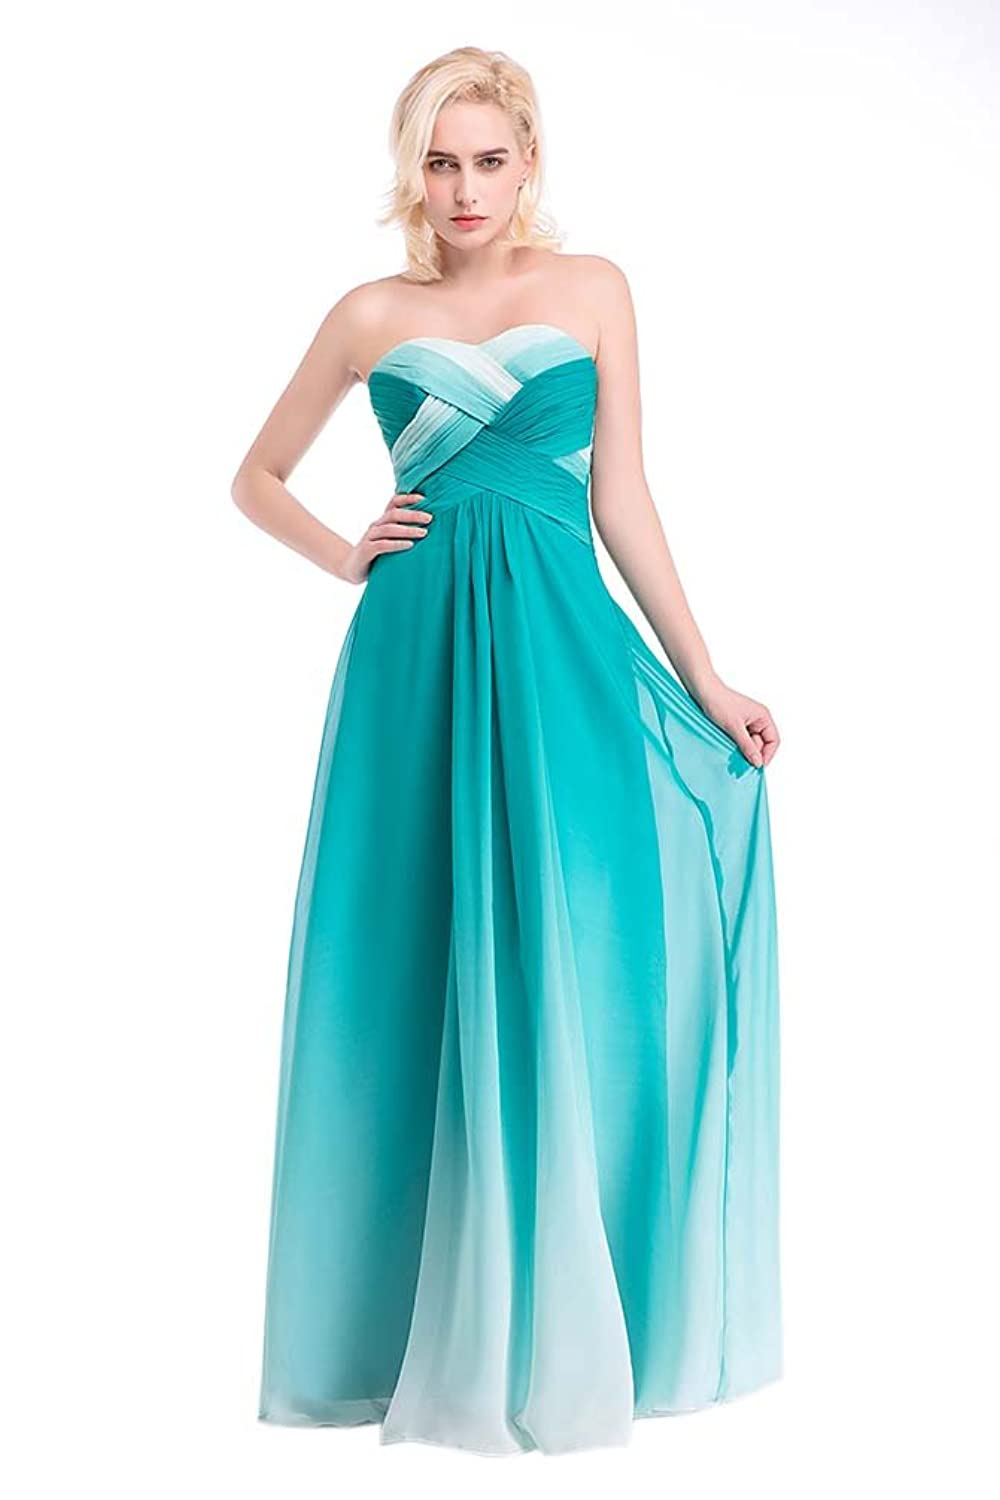 Hot Queen Women's Sweetheart Pleated Sleeveless High-Low Chiffon Long Prom Dresses 2016